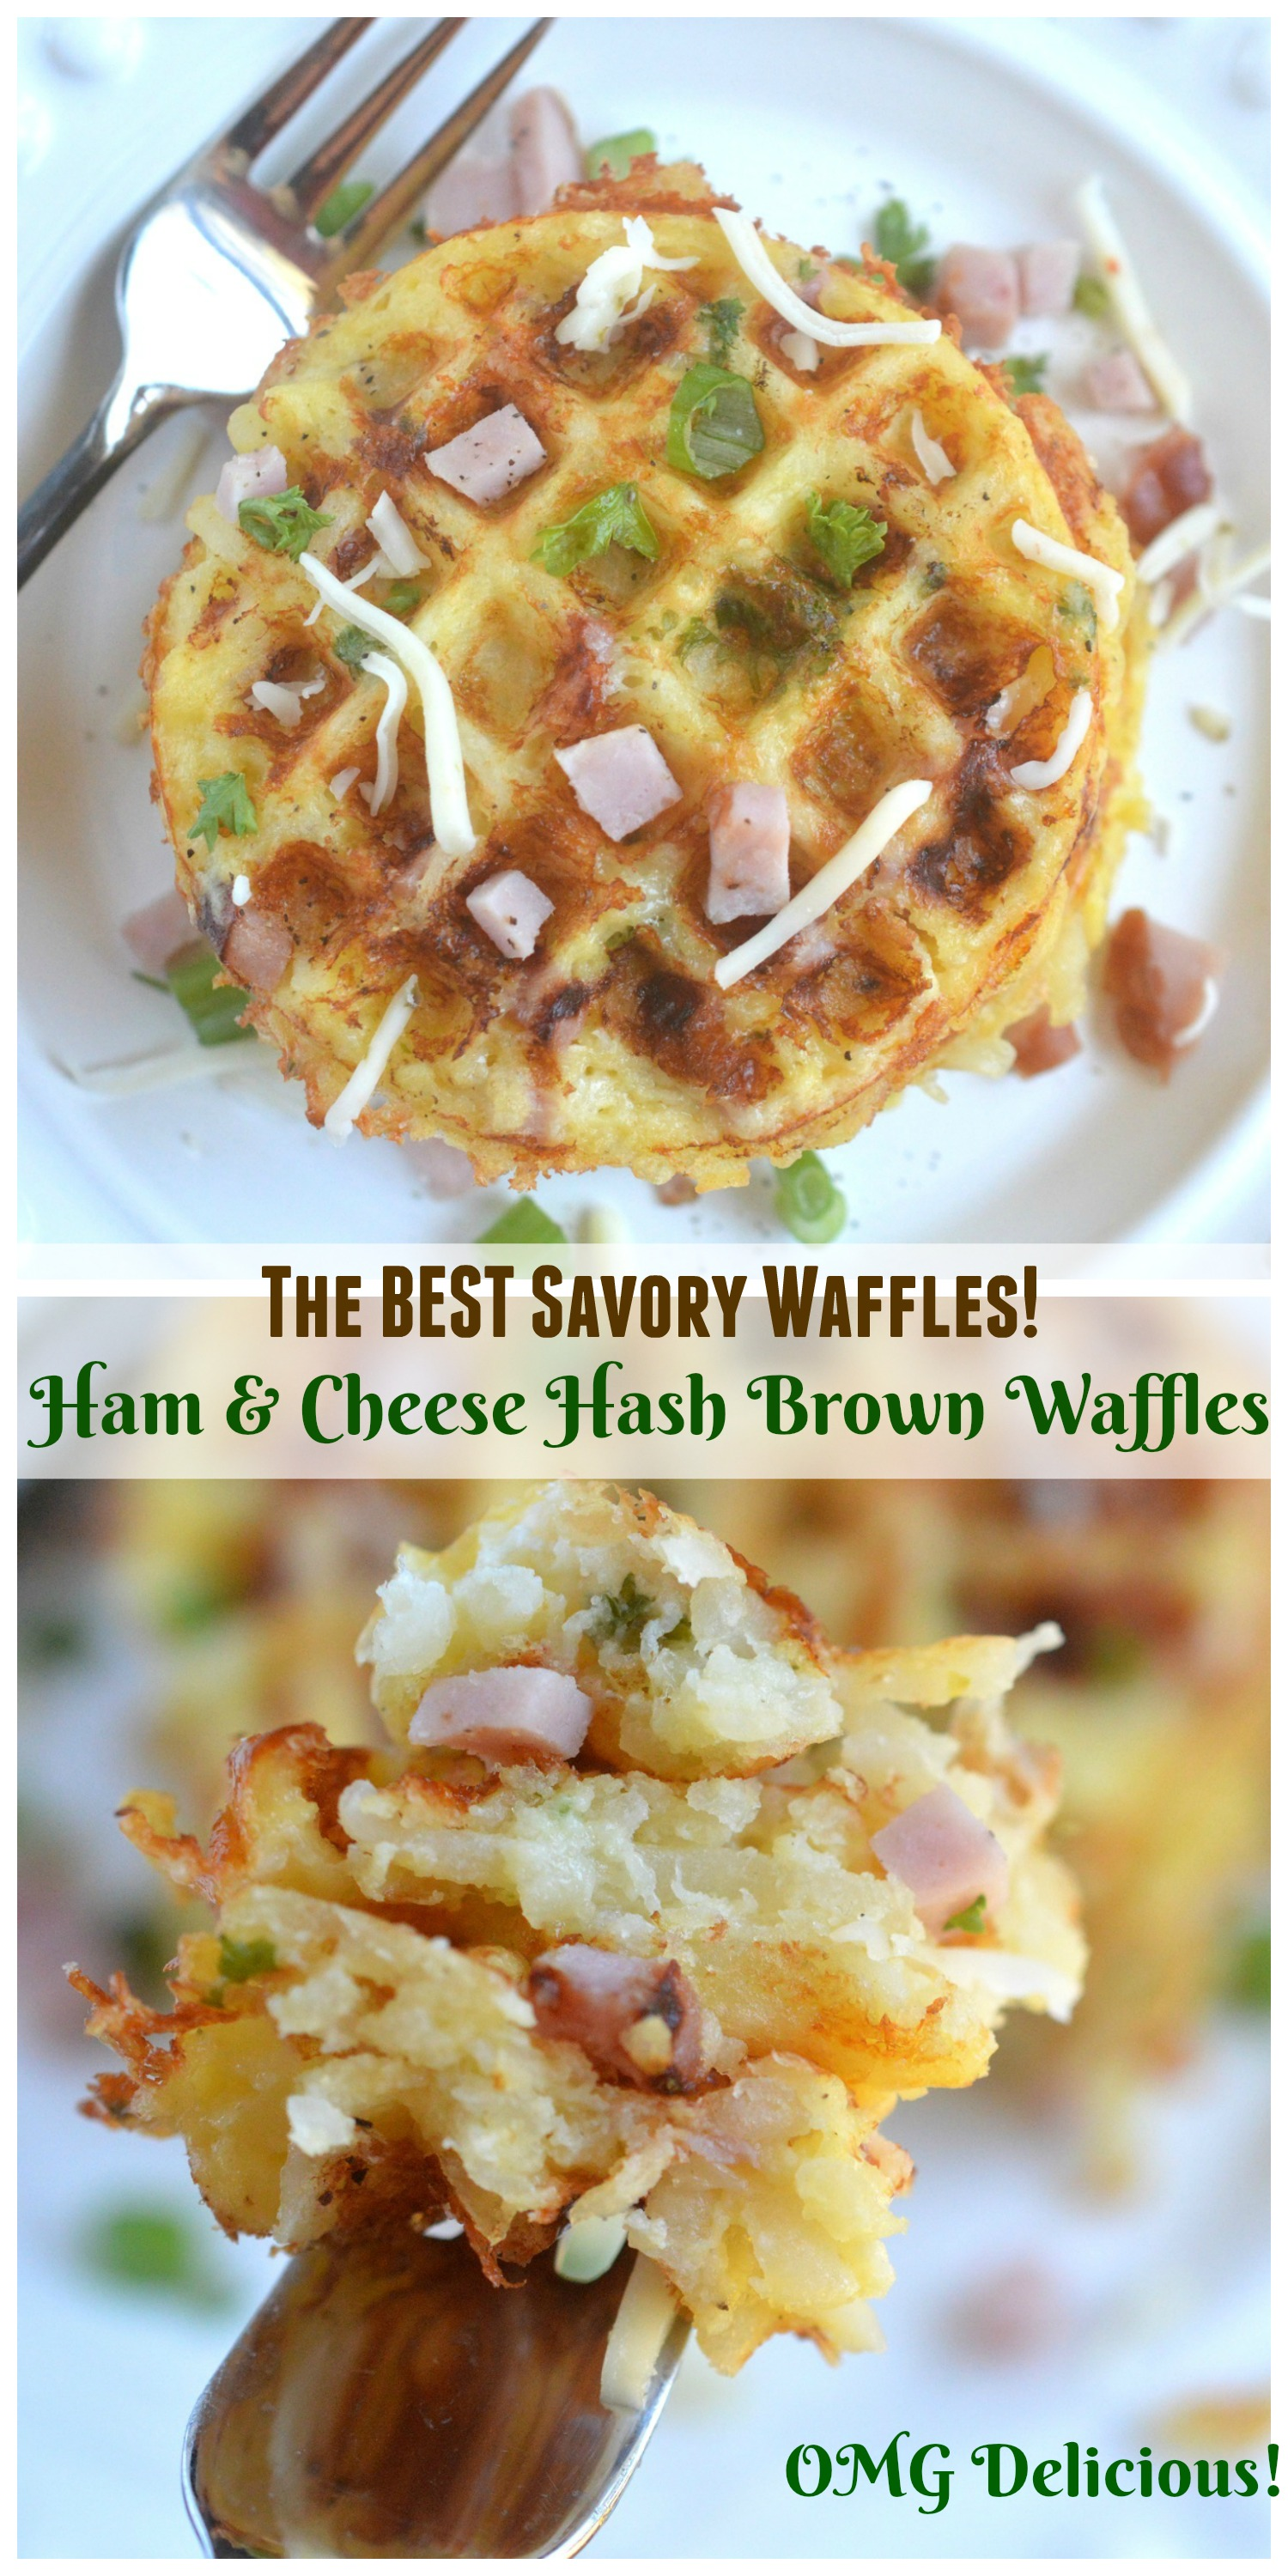 The BEST Savory Waffles - Ham & Cheese Hash Brown Waffles